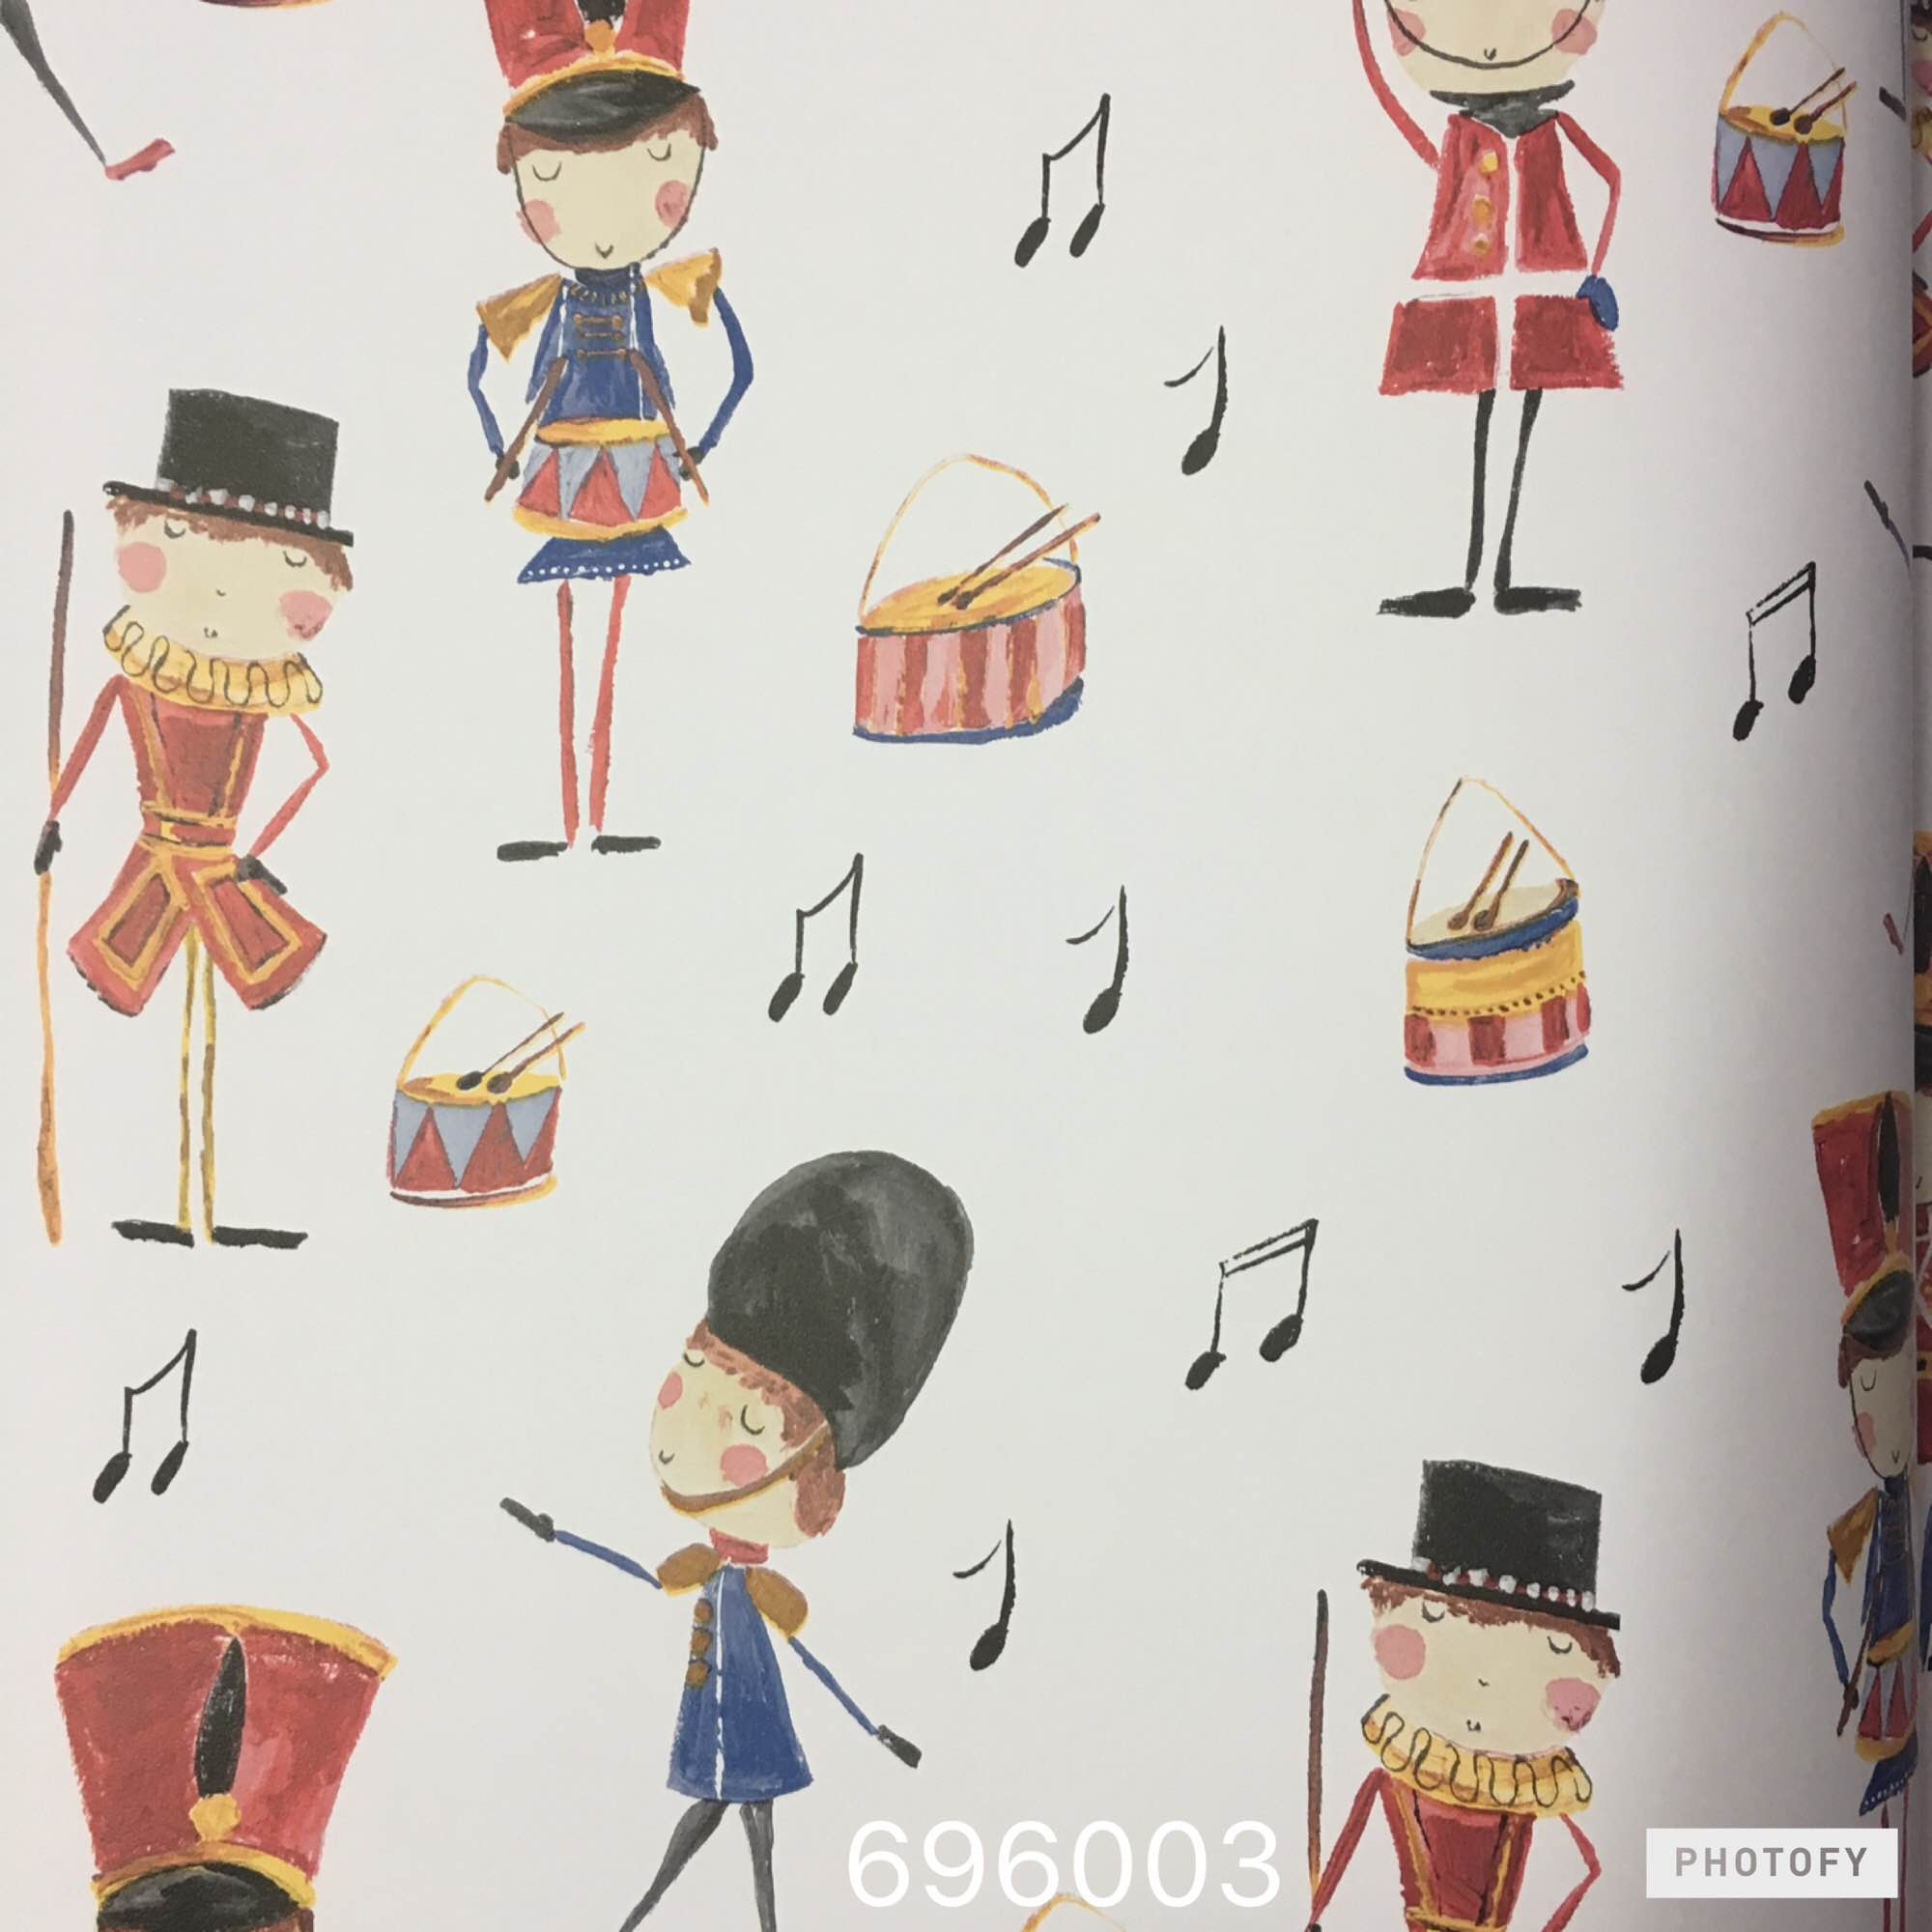 Musical Theme Wallpaper Supplier.  A wallpaper for your Kids Room, children room and Musical stores.   A young beat Imported Wallpaper Supplier in delhi.   To buy call us   Wallparadise- Young Beat Bhagwan dass Wallpaper supplier in chennai.